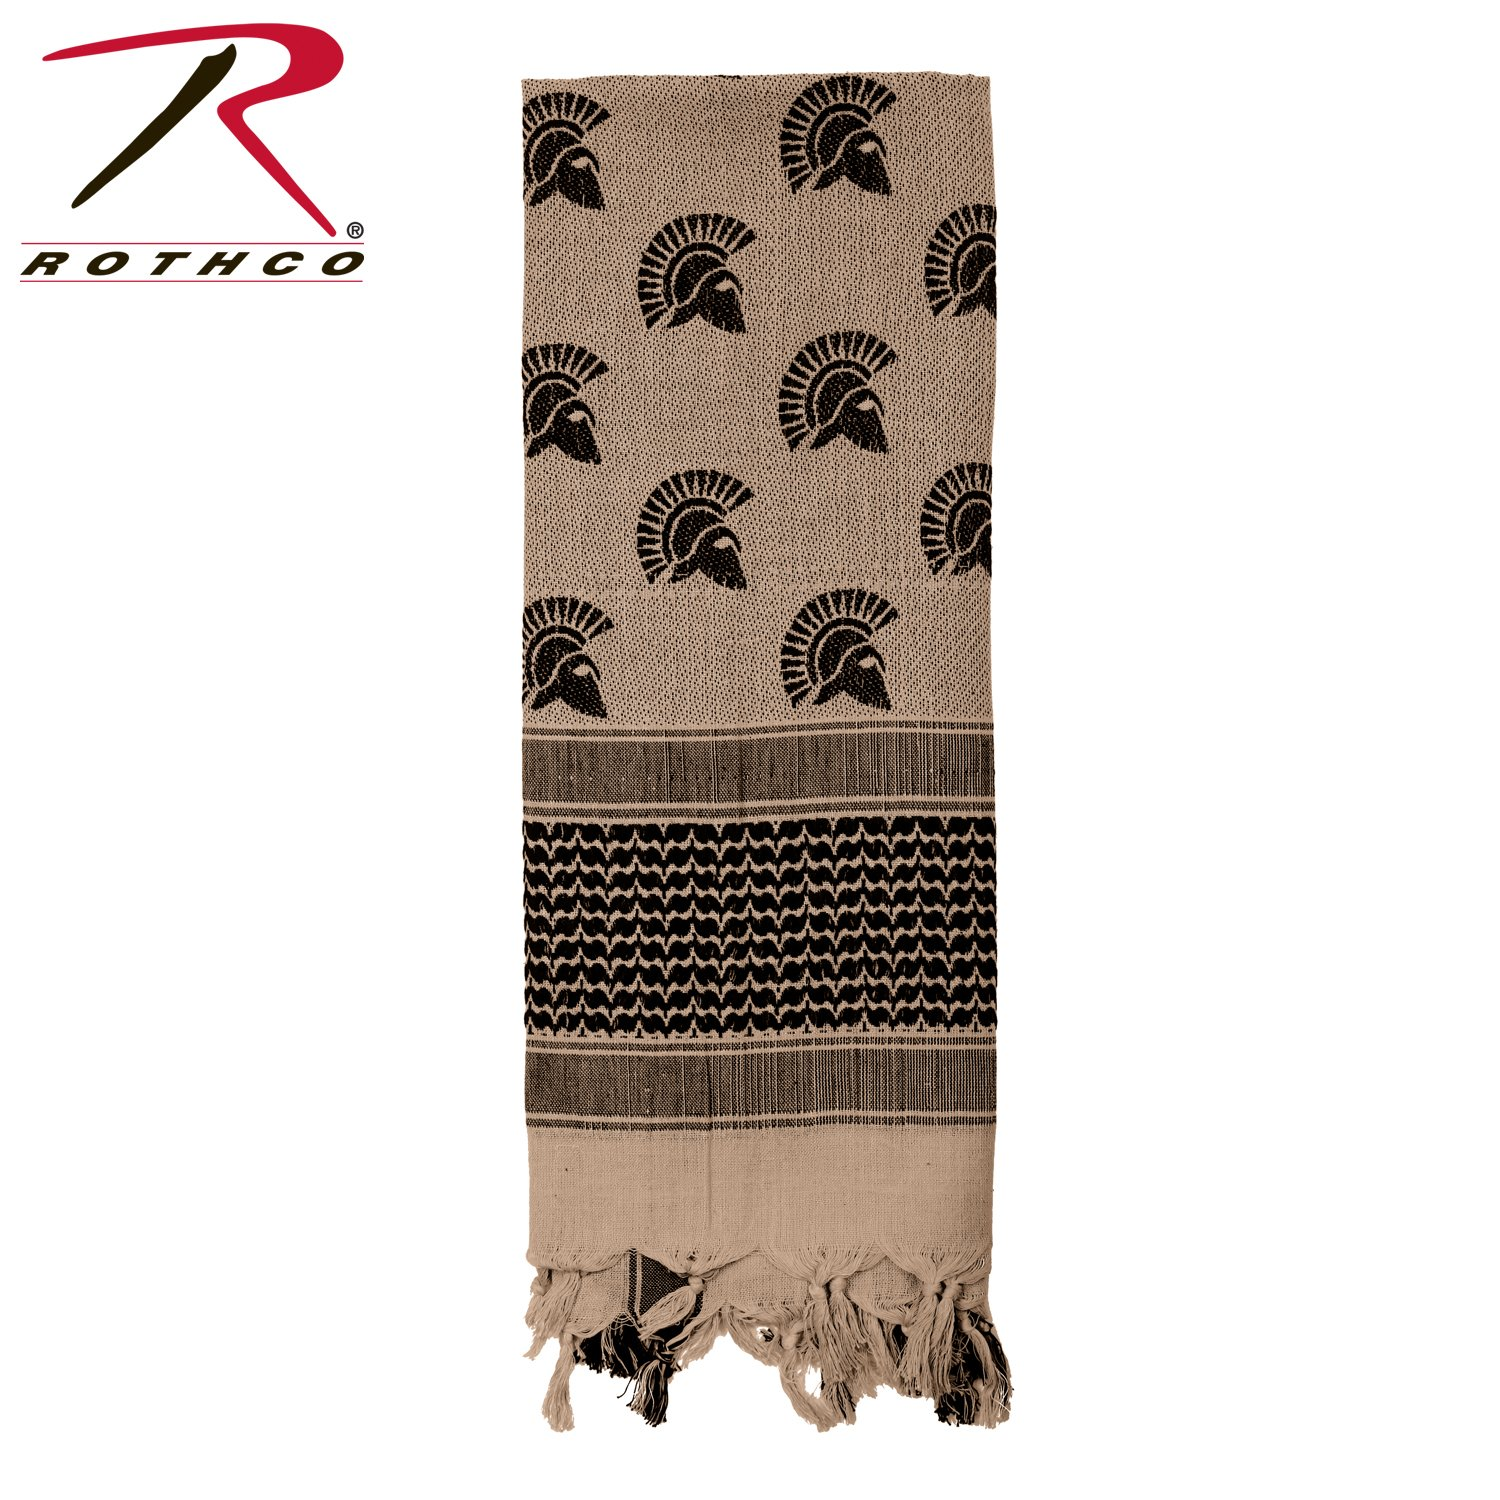 Rothco Spartan Shemagh Tactical Desert Scarf, Tan